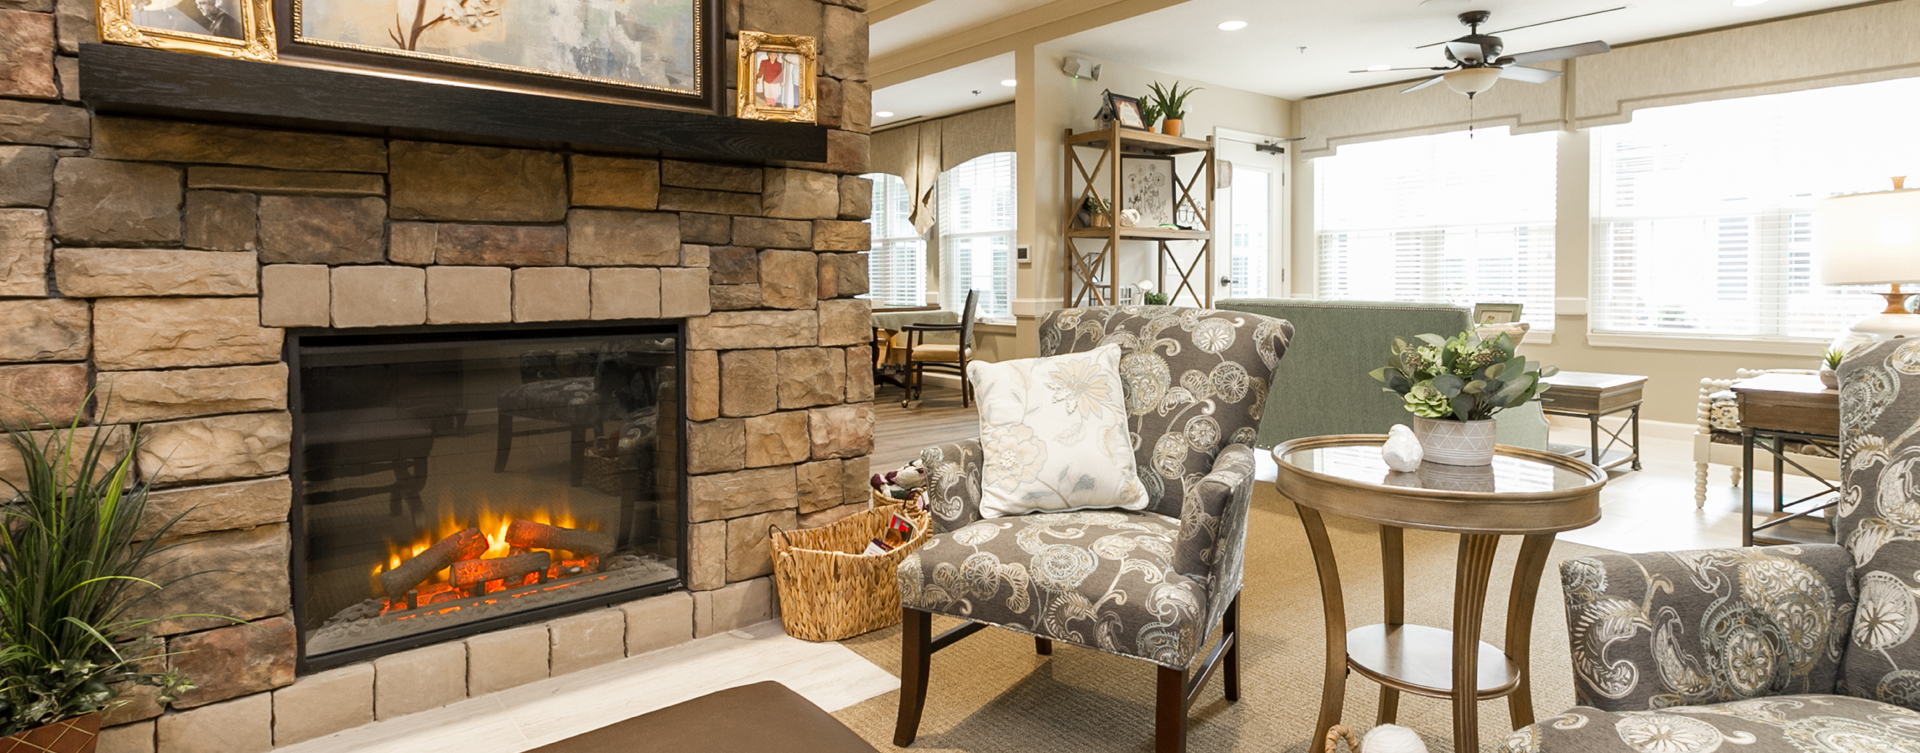 Residents can enjoy furniture covered in cozy fabrics in the Mary B's living room at Bickford of Virginia Beach